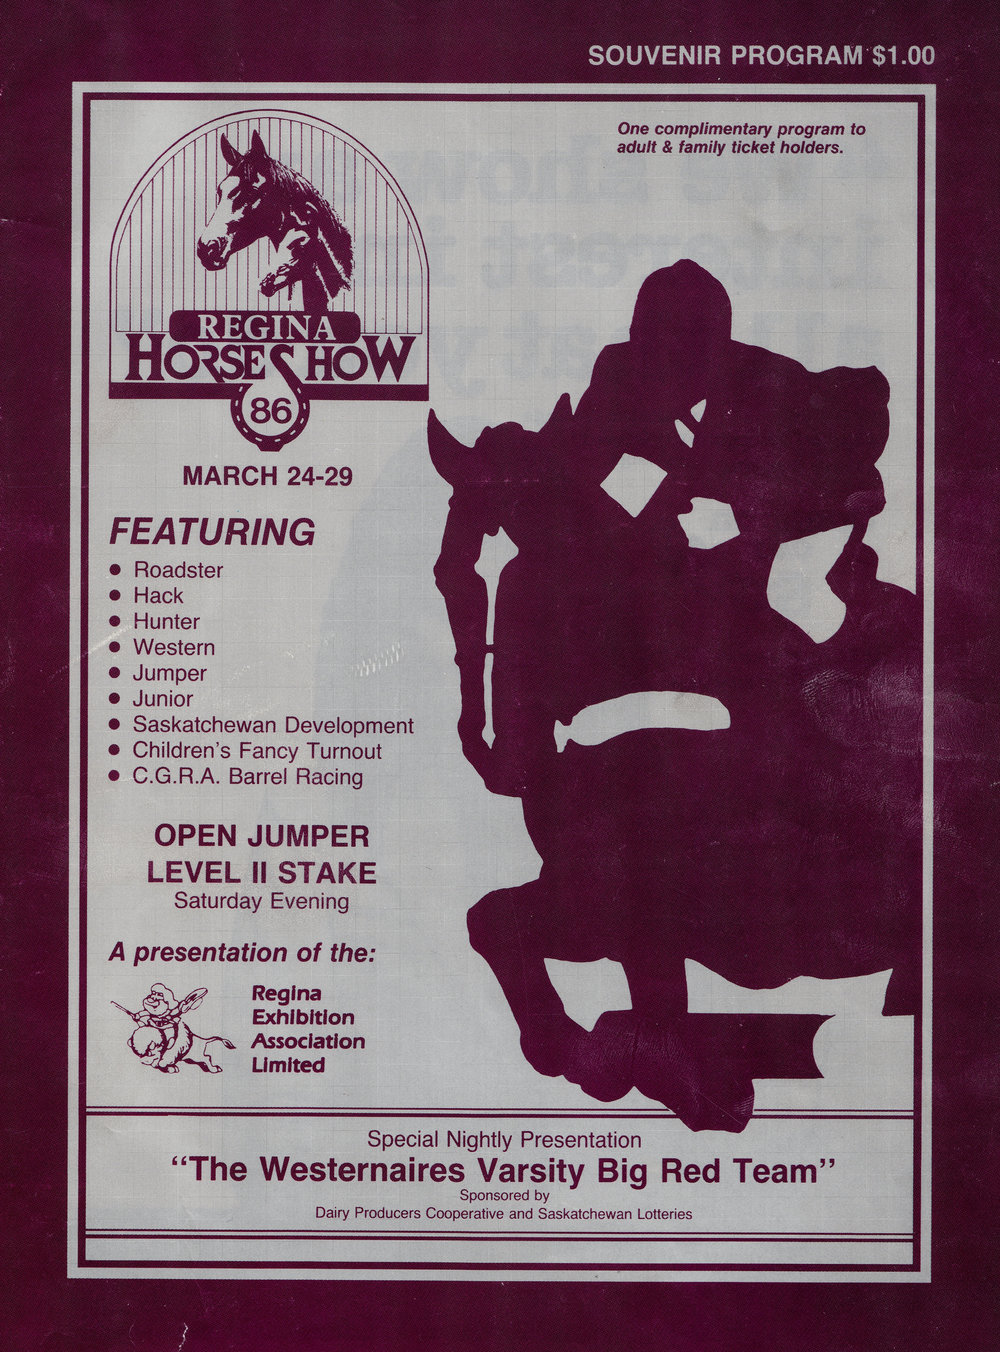 The 1986 Regina Horse Show program cover